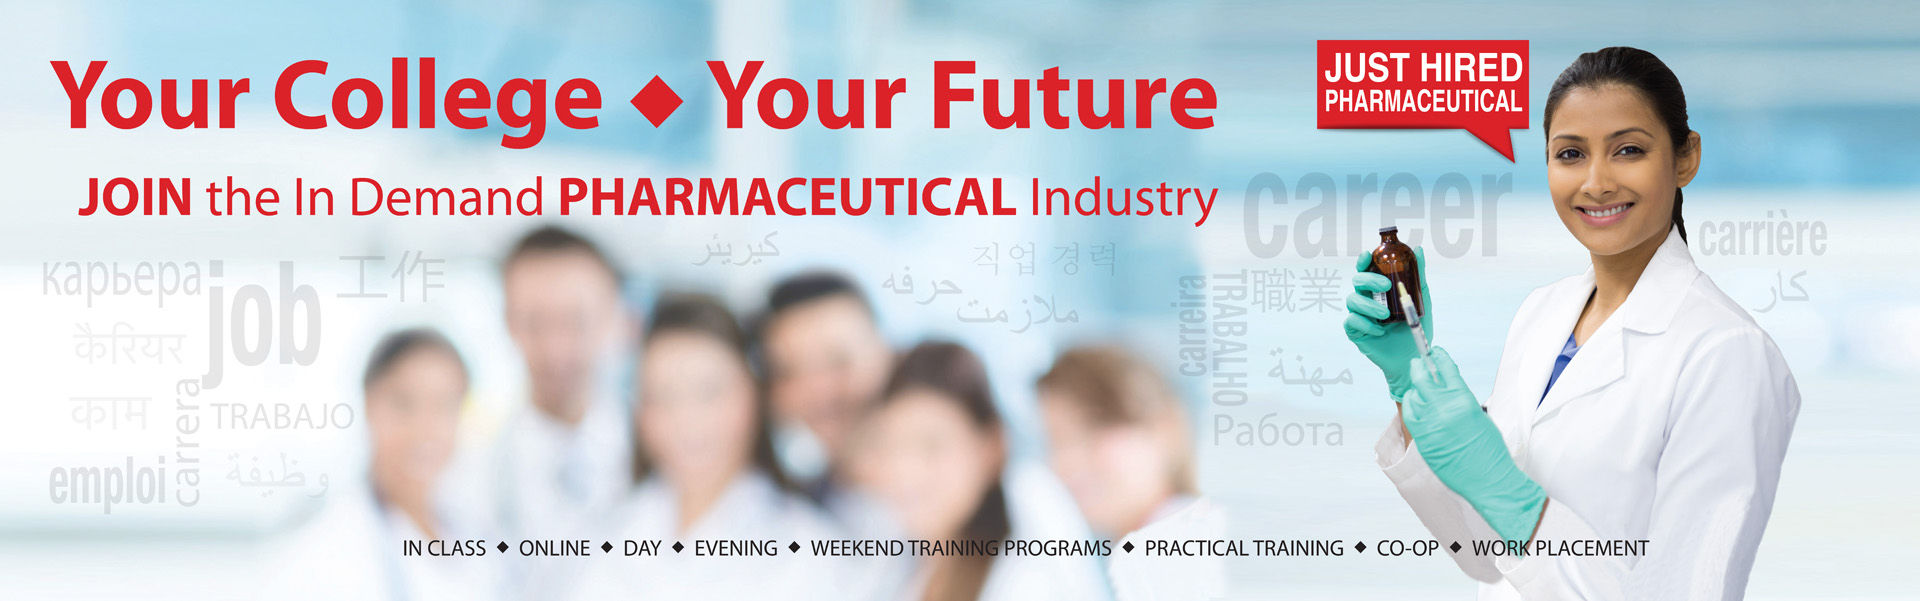 Your college pharmaceutical 2